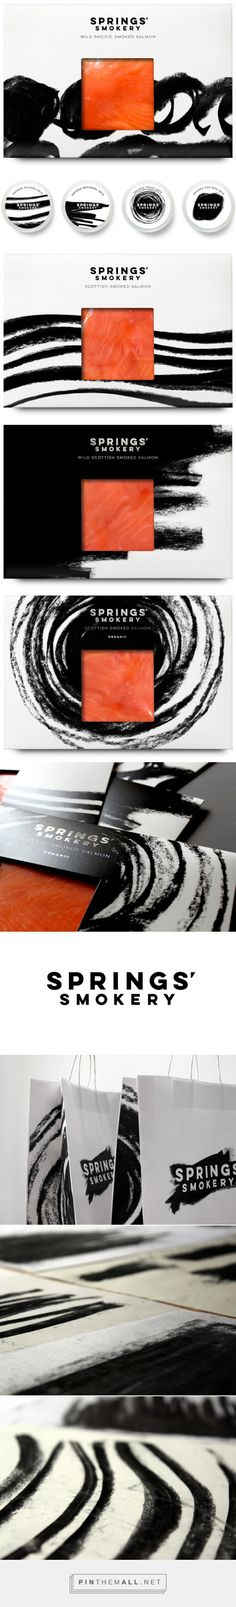 Springs' Smokery #salmon #packaging designed by Distil Studio - http://www.packagingoftheworld.com/2015/08/springs-smokery.html